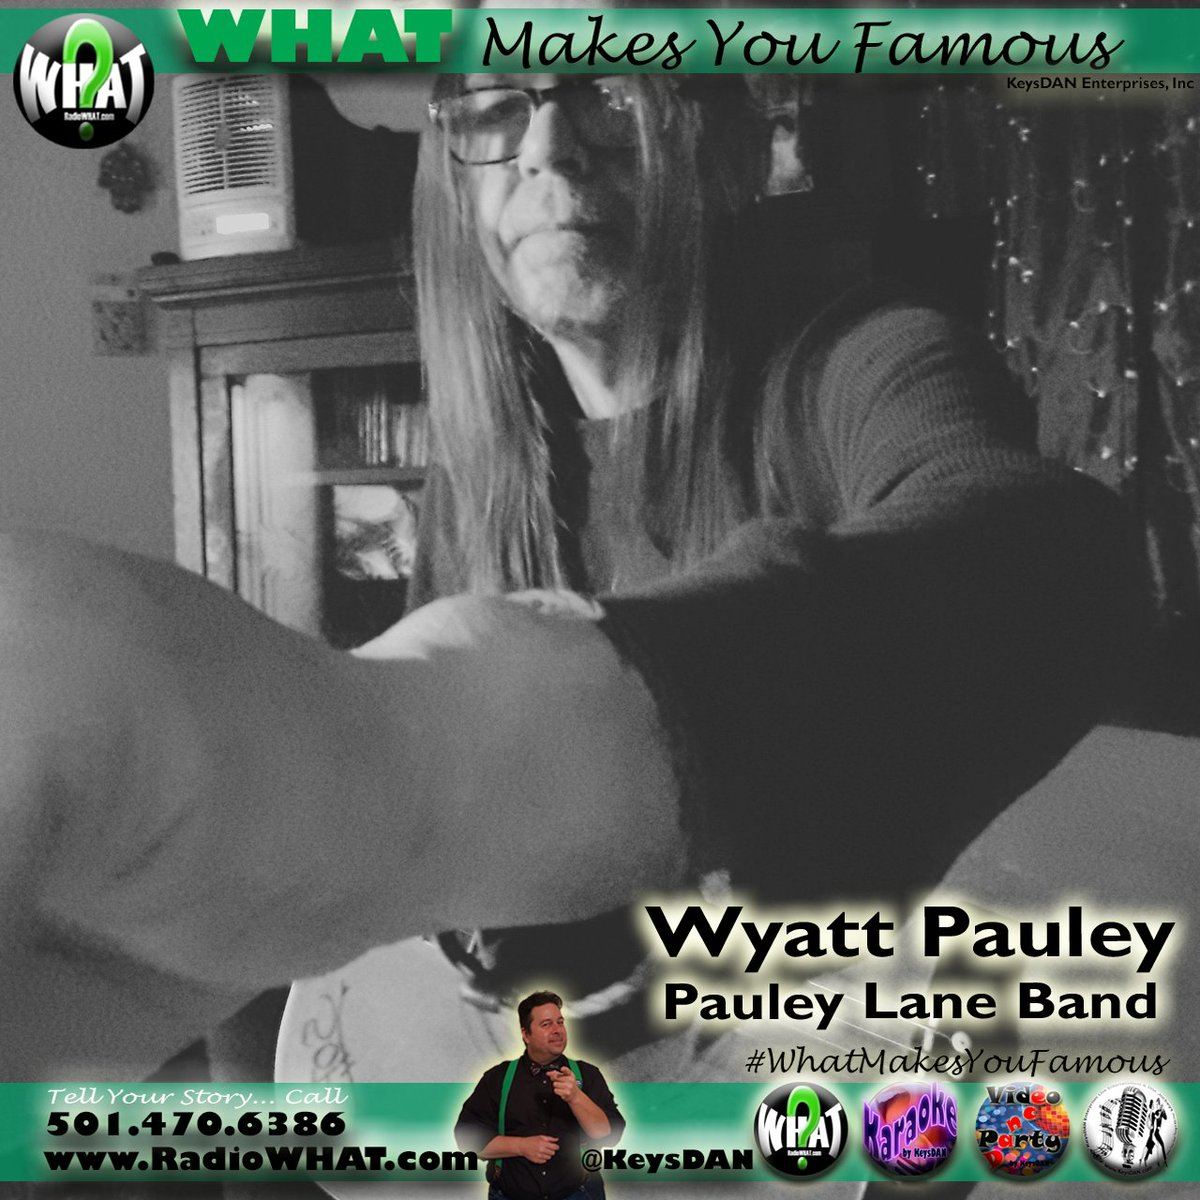 2020-07-06 Wyatt Pauley Pauley Lane Band What Makes You Famous #PODCAST #WhatMakesYouFamous @KeysDAN @wyattpauley @pauleylaneband @inexrecords https://anchor.fm/keysdanshow/episodes/Wyatt-Pauley-Pauley-Lane-Band-What-Makes-You-Famous-PODCAST-WhatMakesYouFamous-KeysDAN-egdhj1 … #guitars #guitar #guitarist #music #guitarplayer #guitarporn #musician #guitarsolo #guitarsofinstagram pic.twitter.com/nrjjPzz3zr